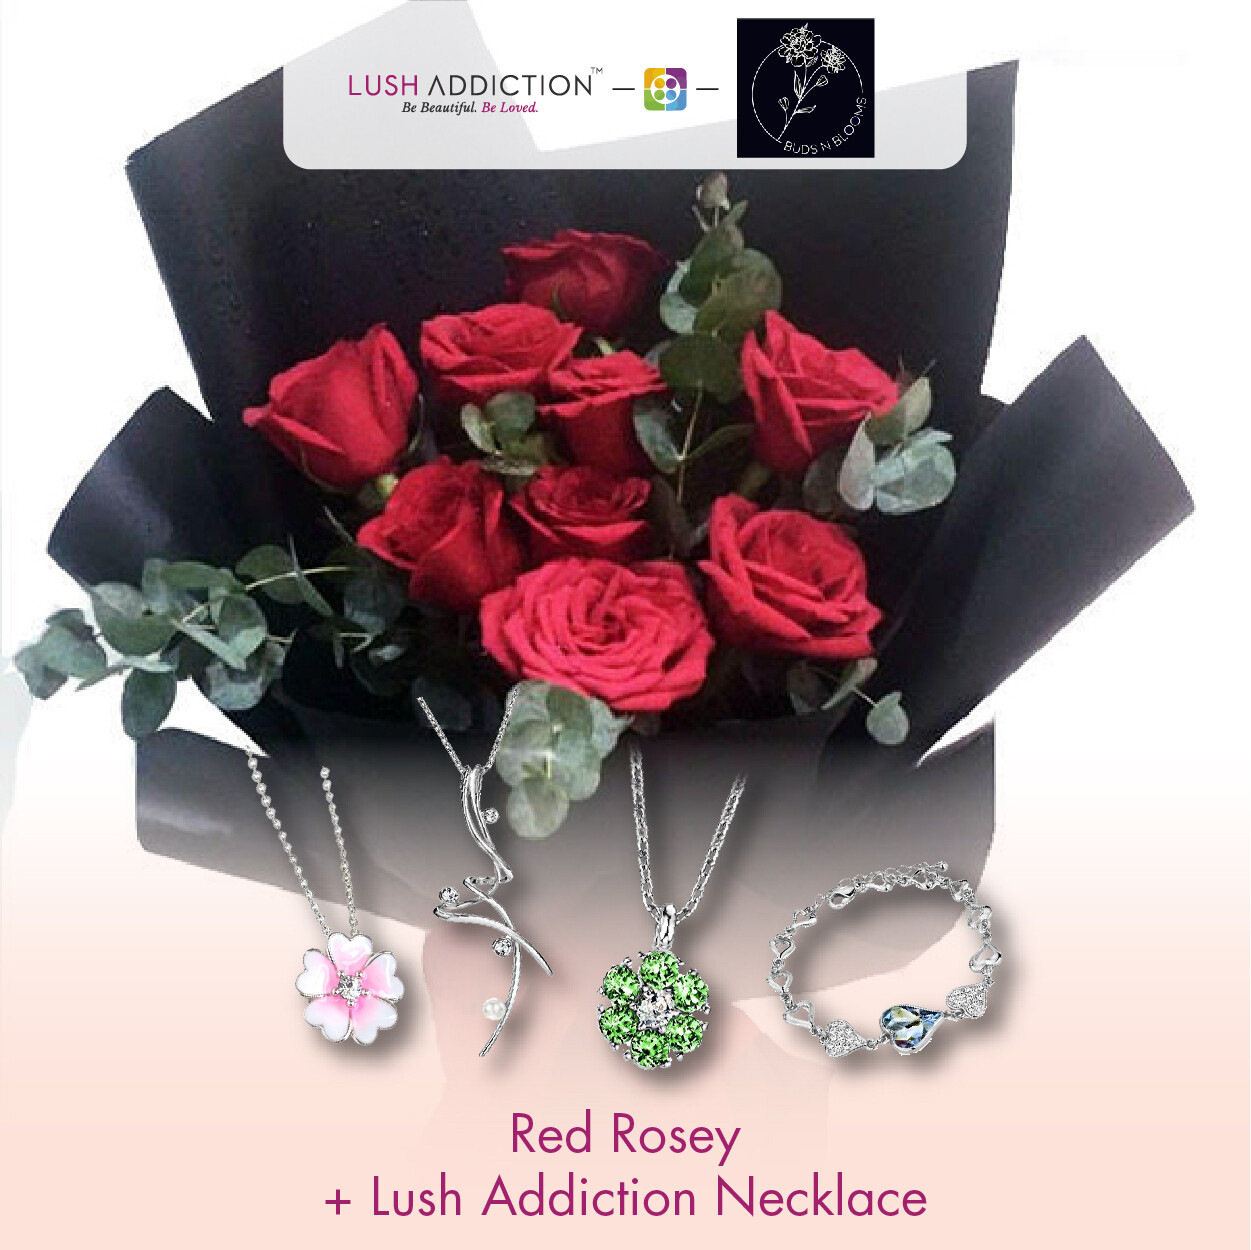 Red Rosey + Lush Addiction Necklace (By: Buds N Blooms from KL)